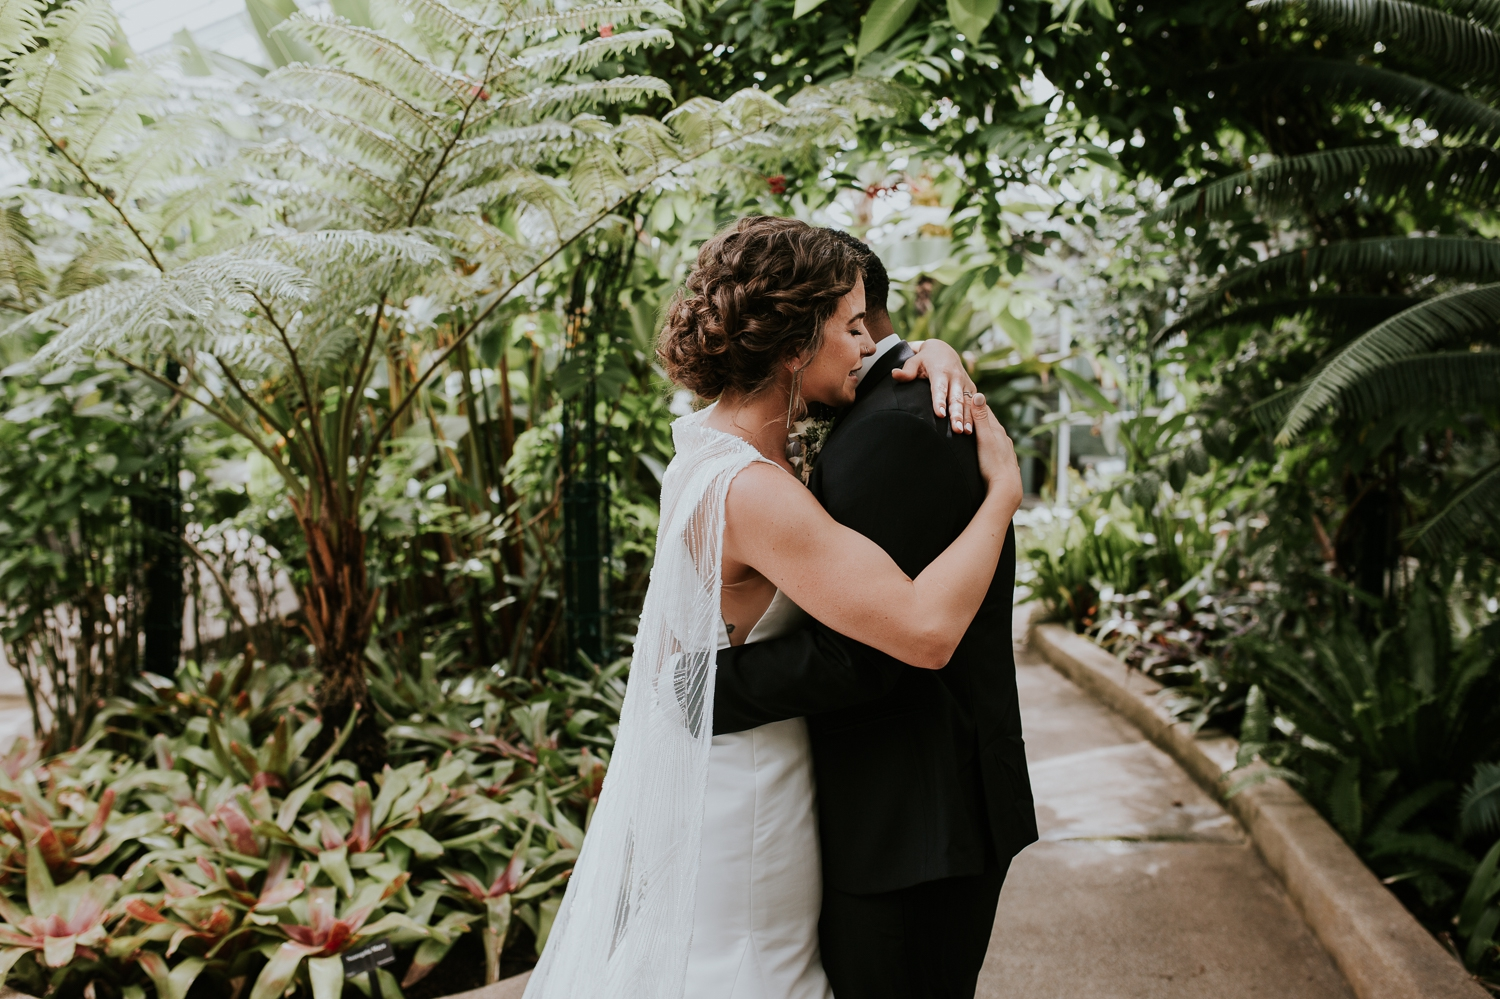 baltimore-maryland-rawlings-conservatory-wedding-portaits-photography 30.jpg